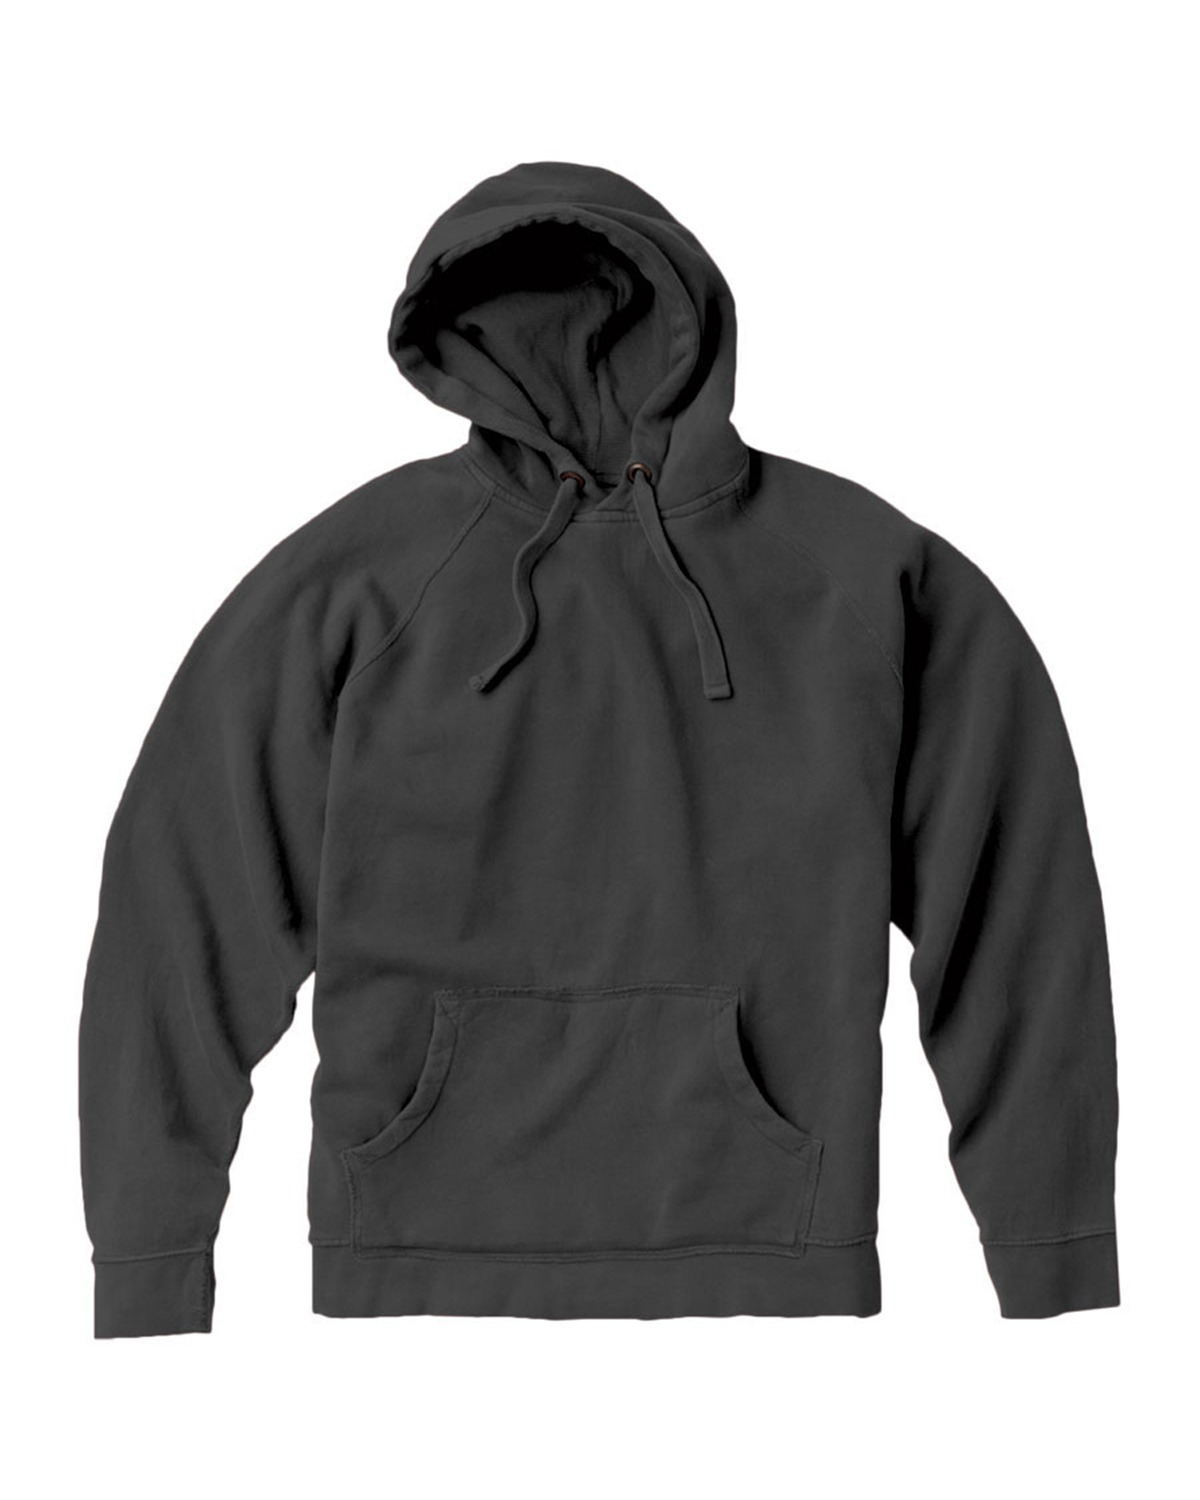 Comfort Colors 1567 9.5 oz. Garment-Dyed Pullover Hood